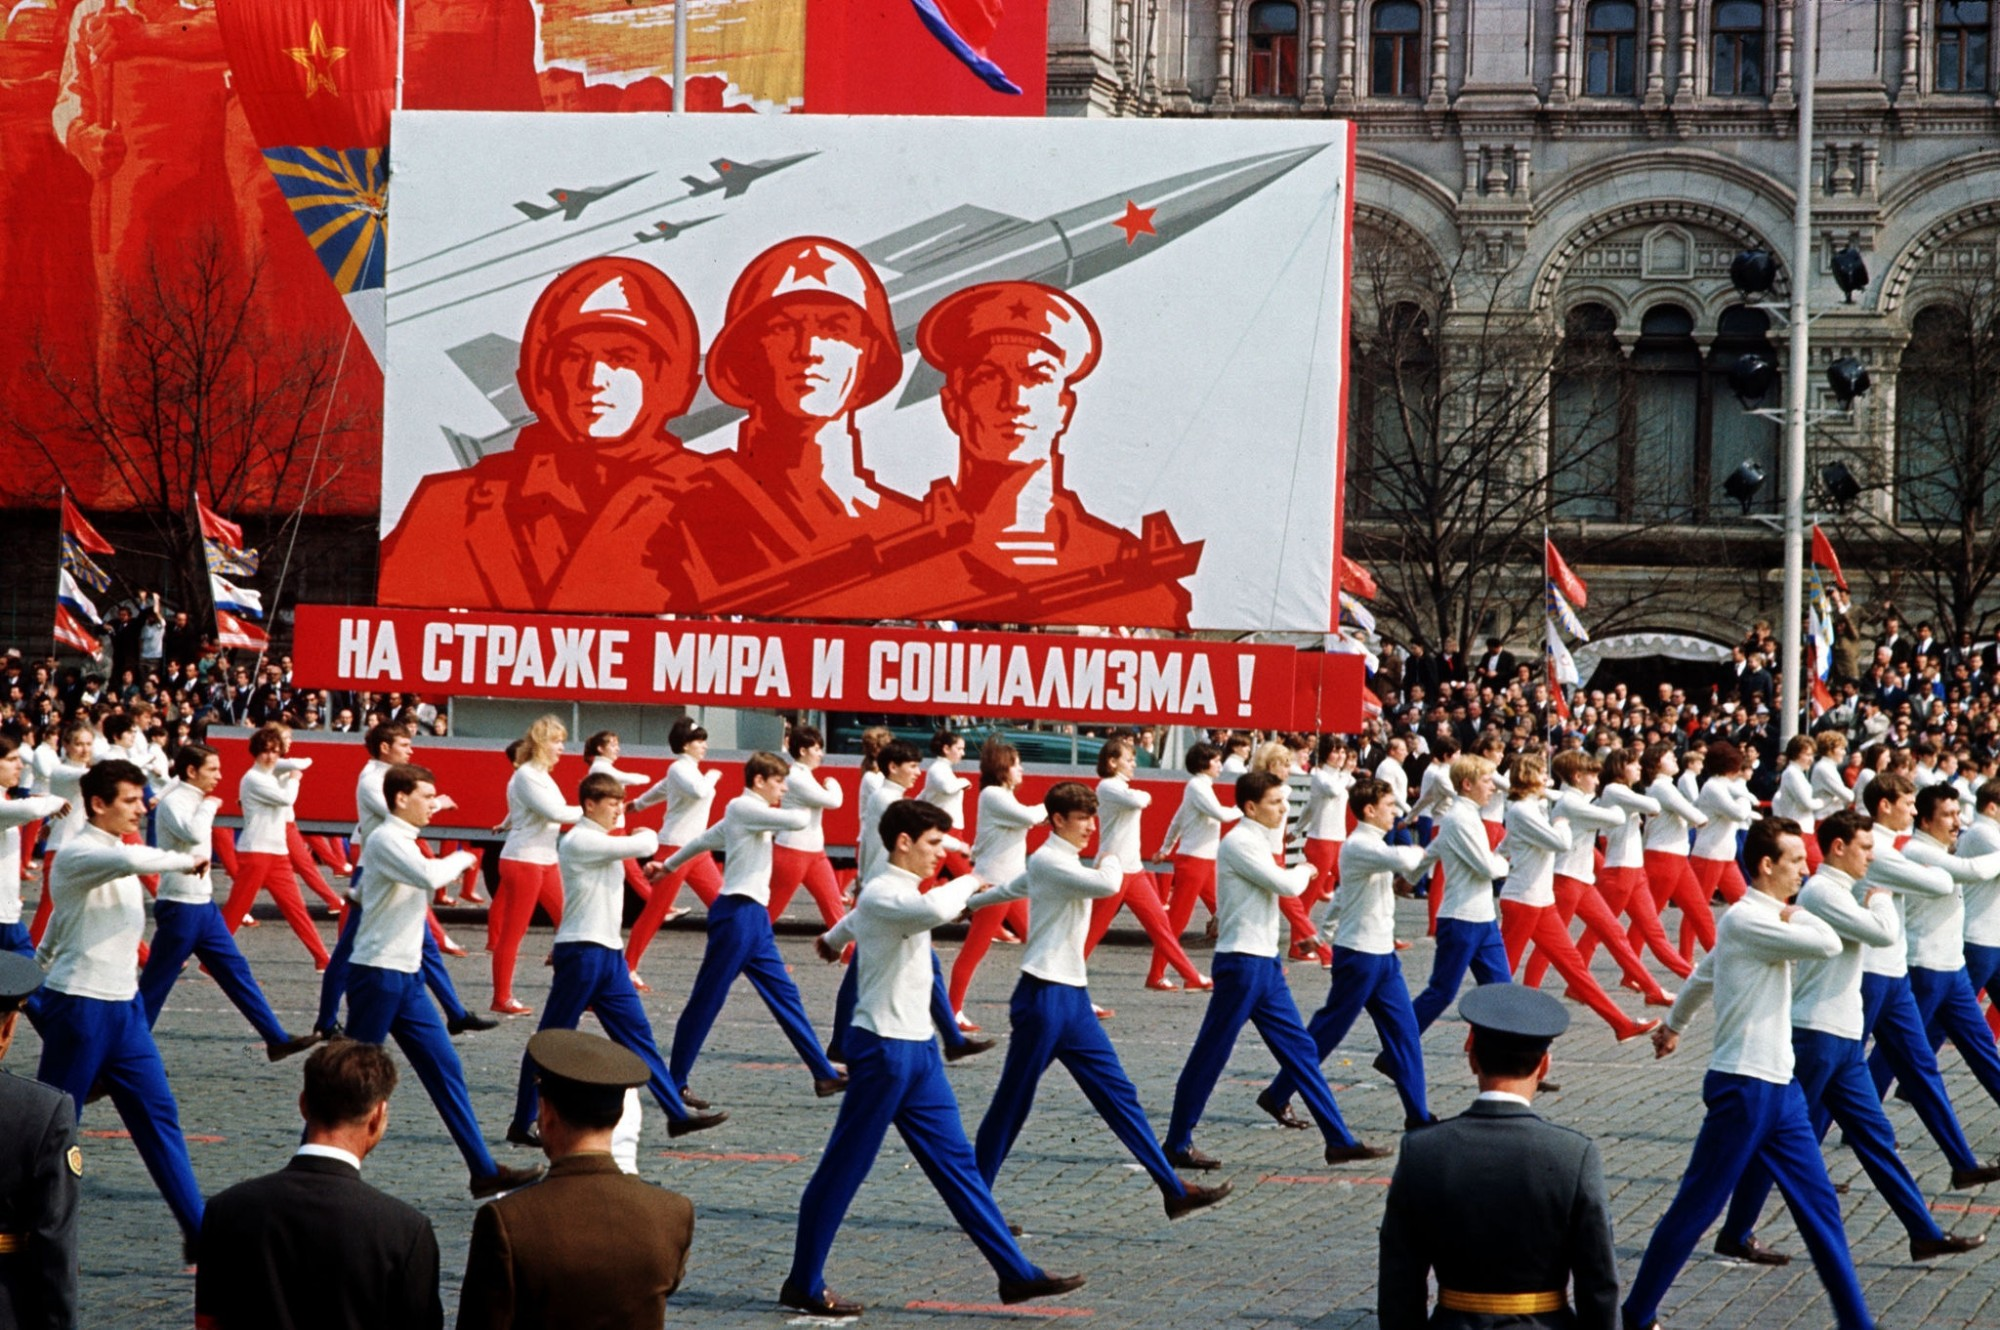 1969 A general view showing May Day marches in Red Square during the annual parade